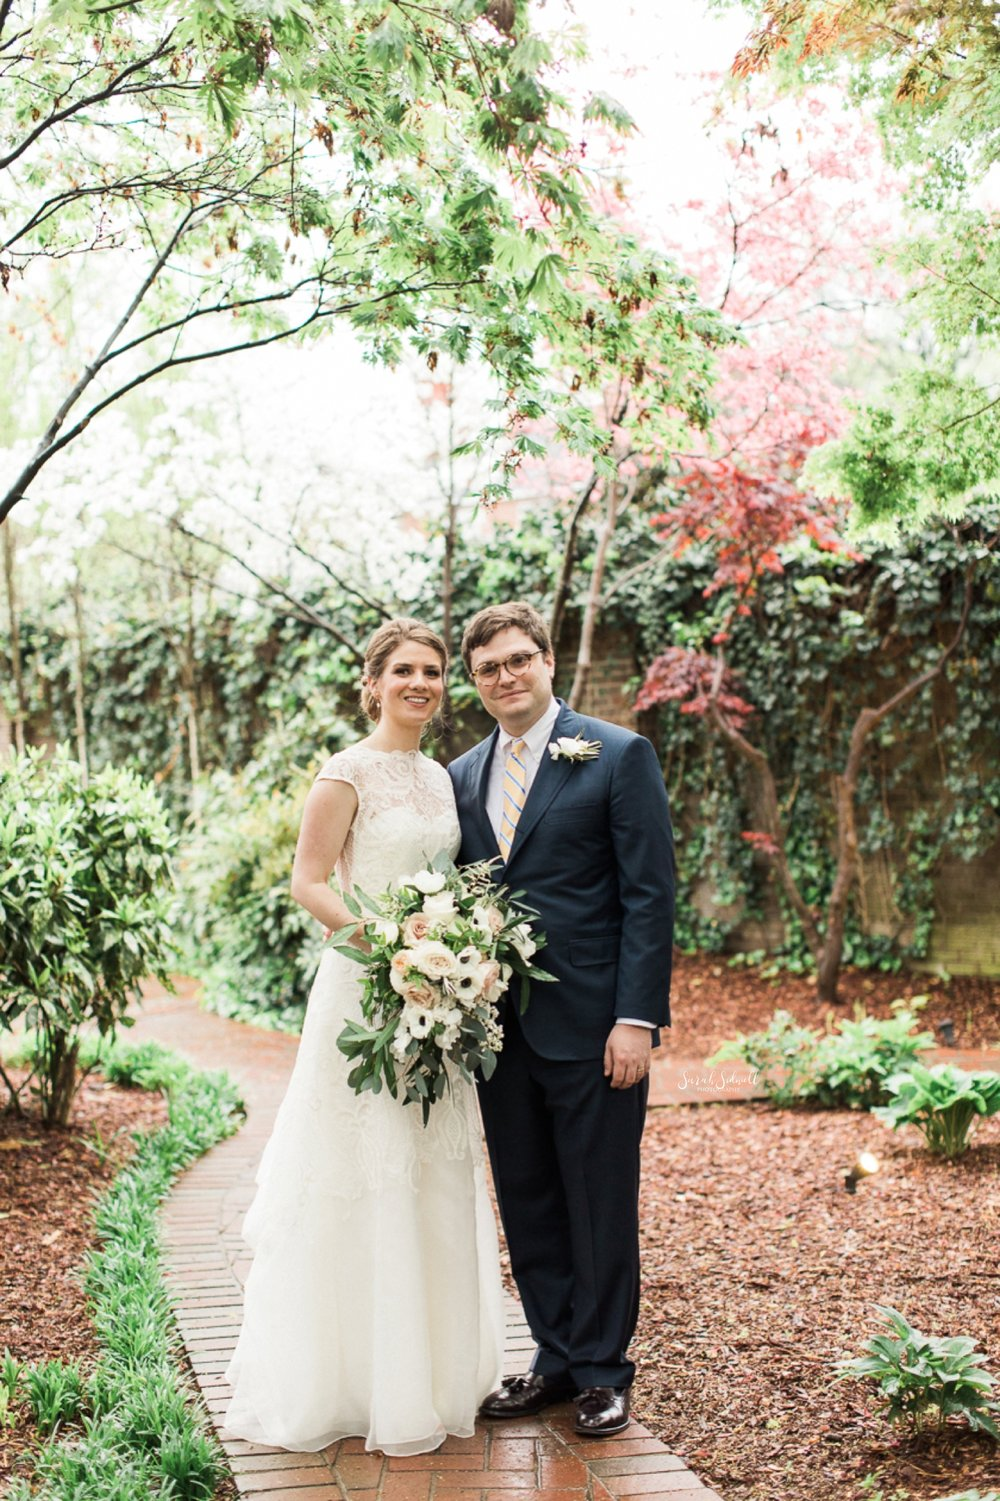 A bride and groom stand in a garden at the East Ivy Mansion